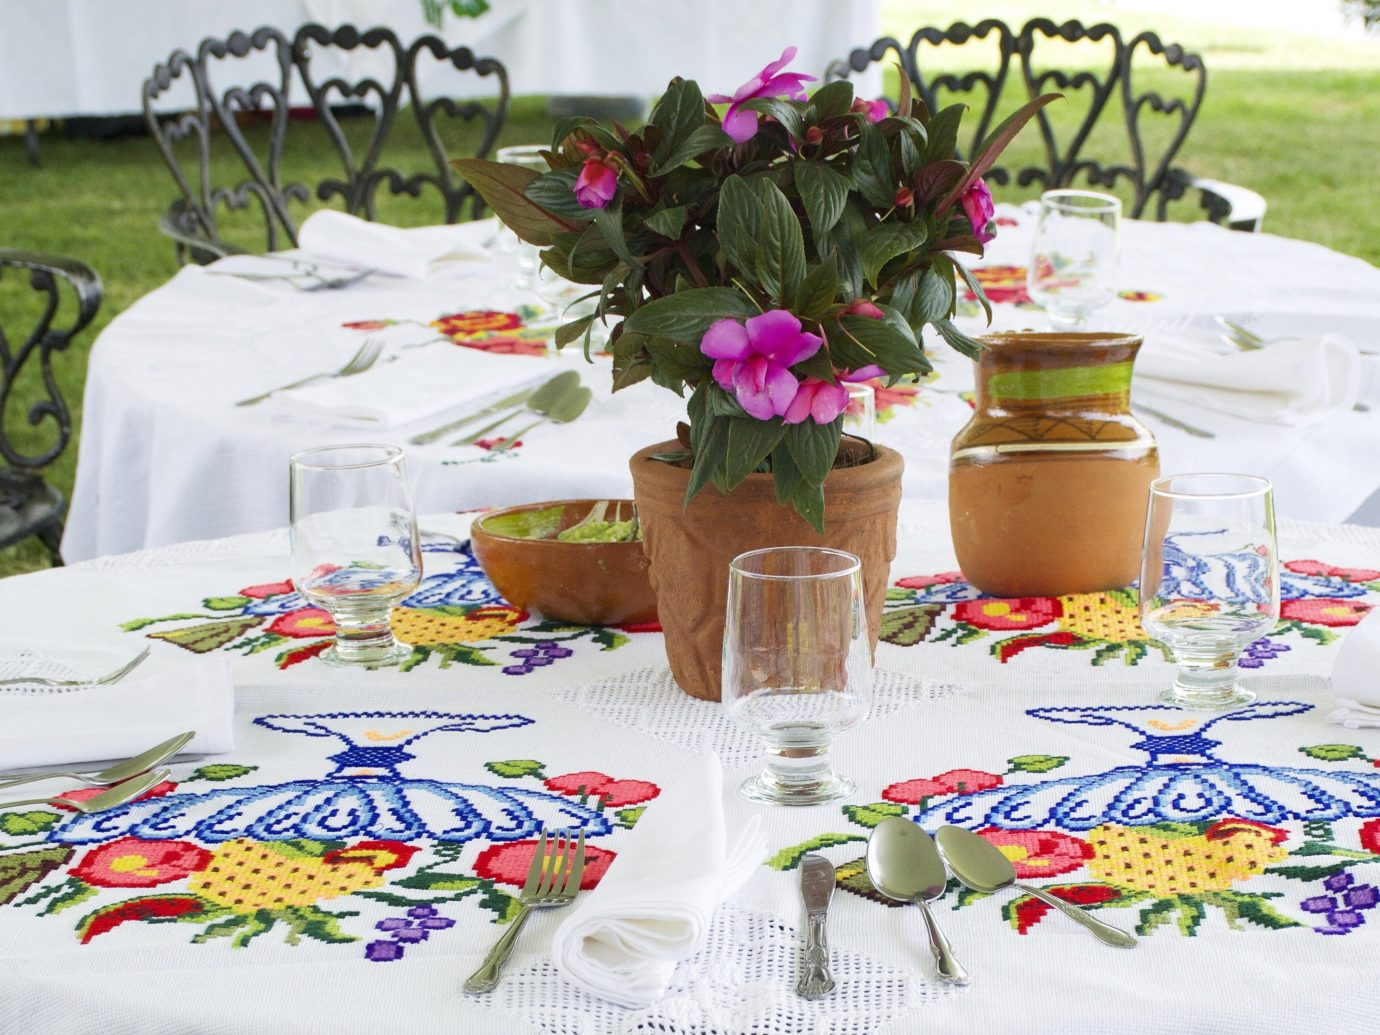 Jetsetter Guides table tablecloth flower flower arranging centrepiece floristry Party floral design event textile meal material set plant dining table